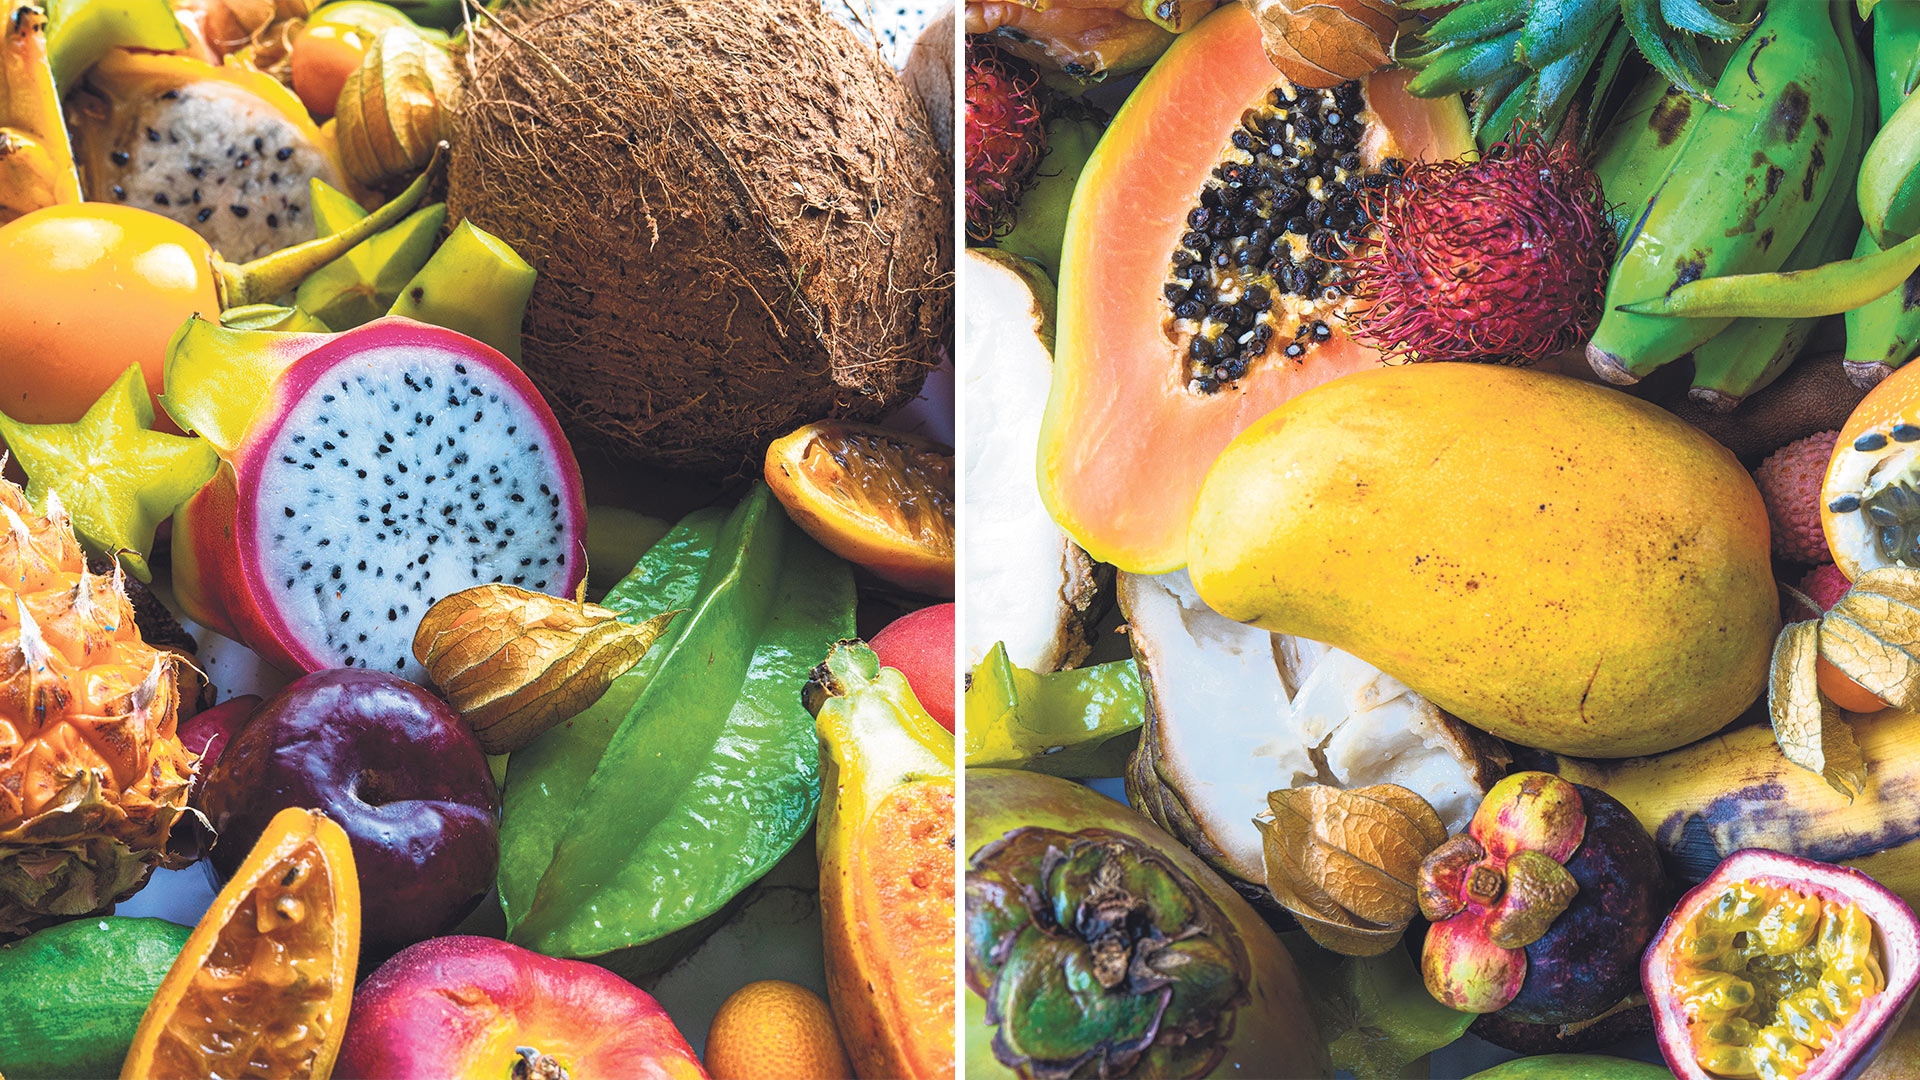 Win a selection of juicy, sweet and ready-to-eat exotic fruit Worth £250!